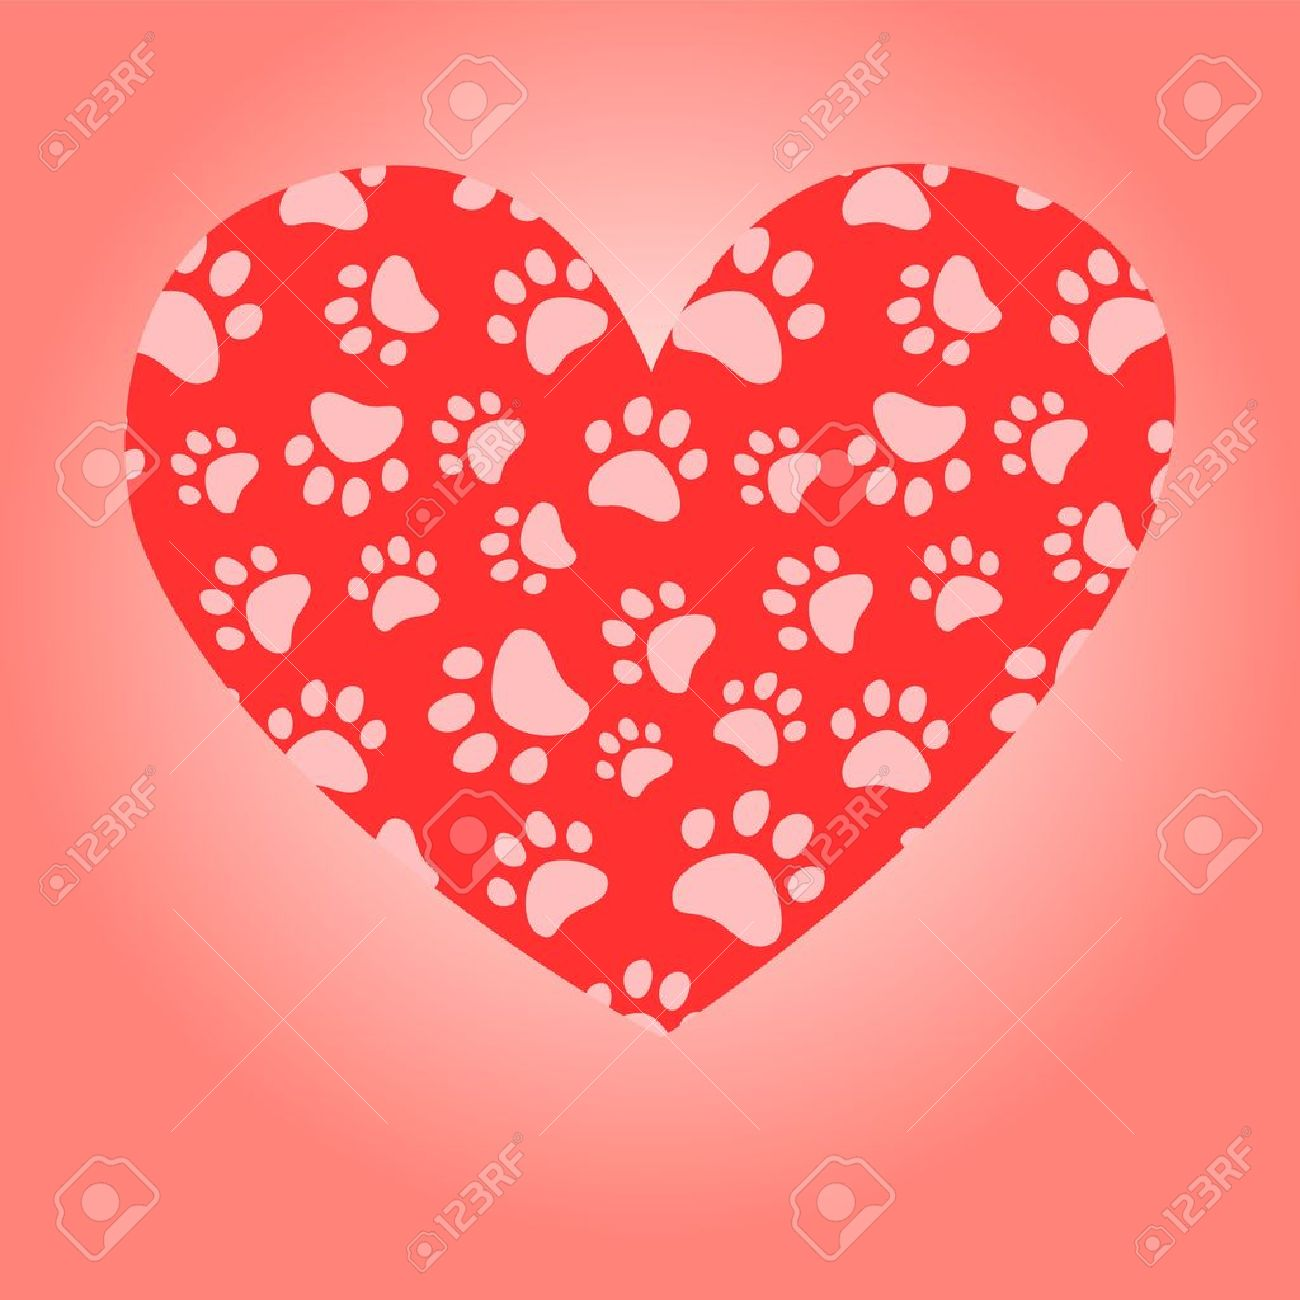 2 336 paw print heart cliparts stock vector and royalty free paw